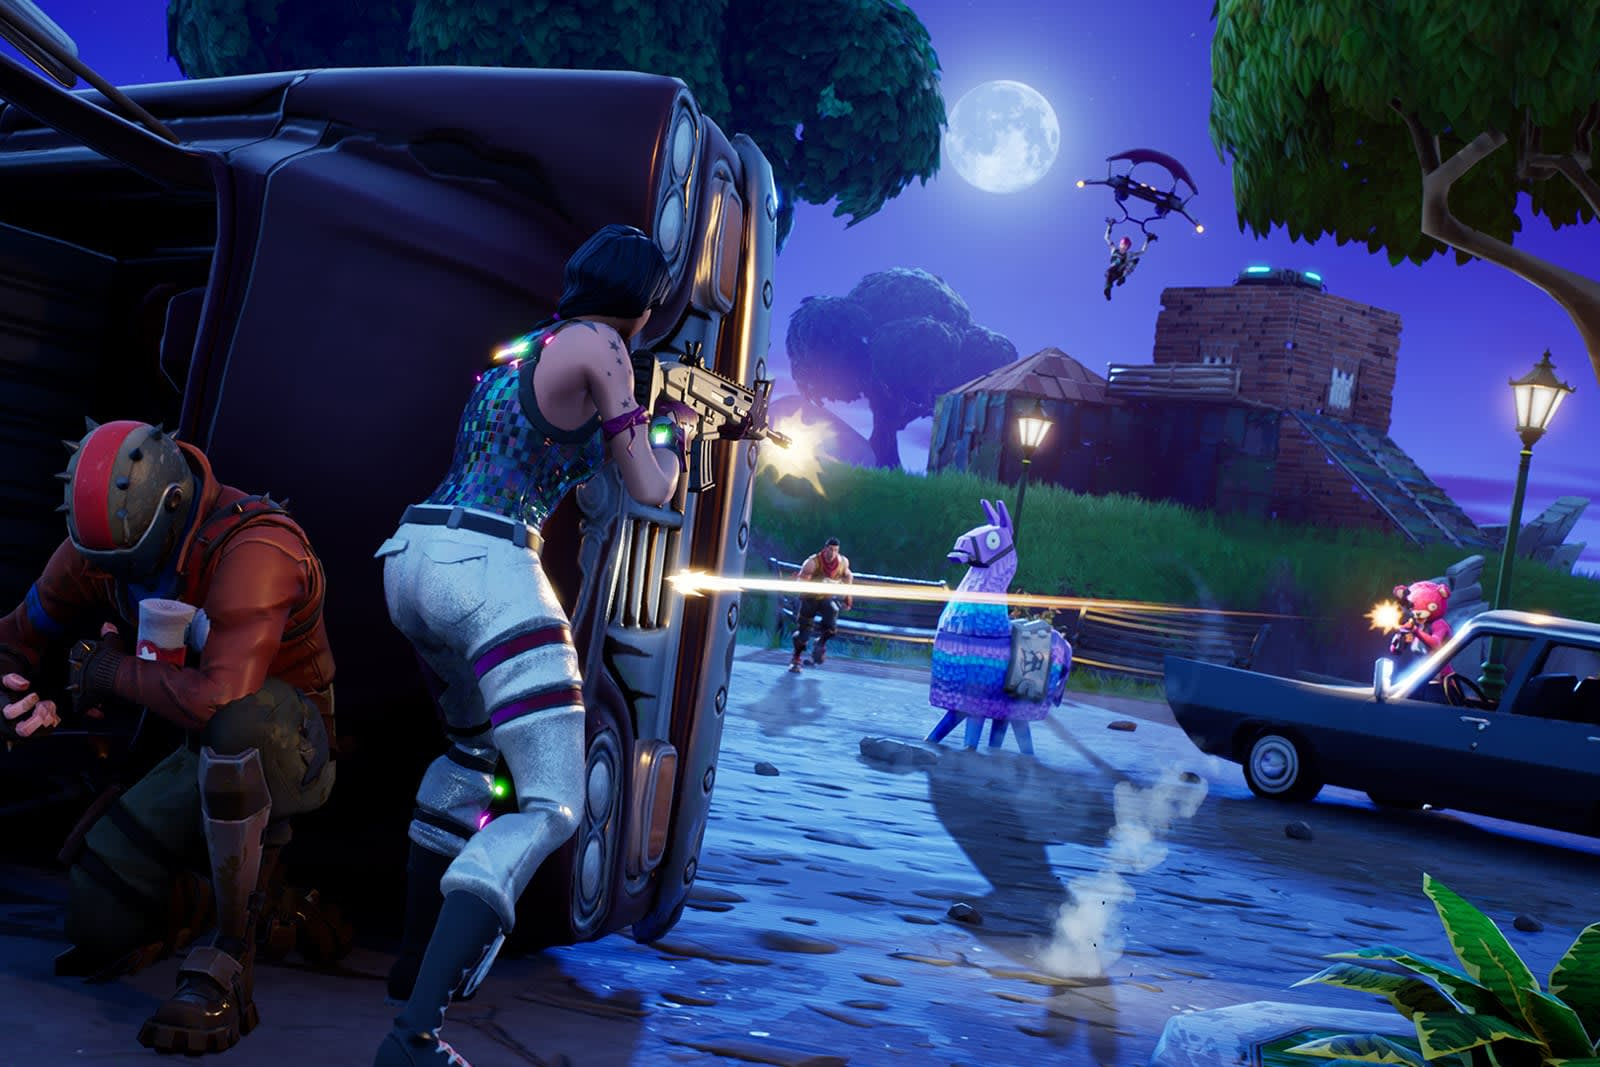 fortnite now has over 200 million players - fortnite player base after apex